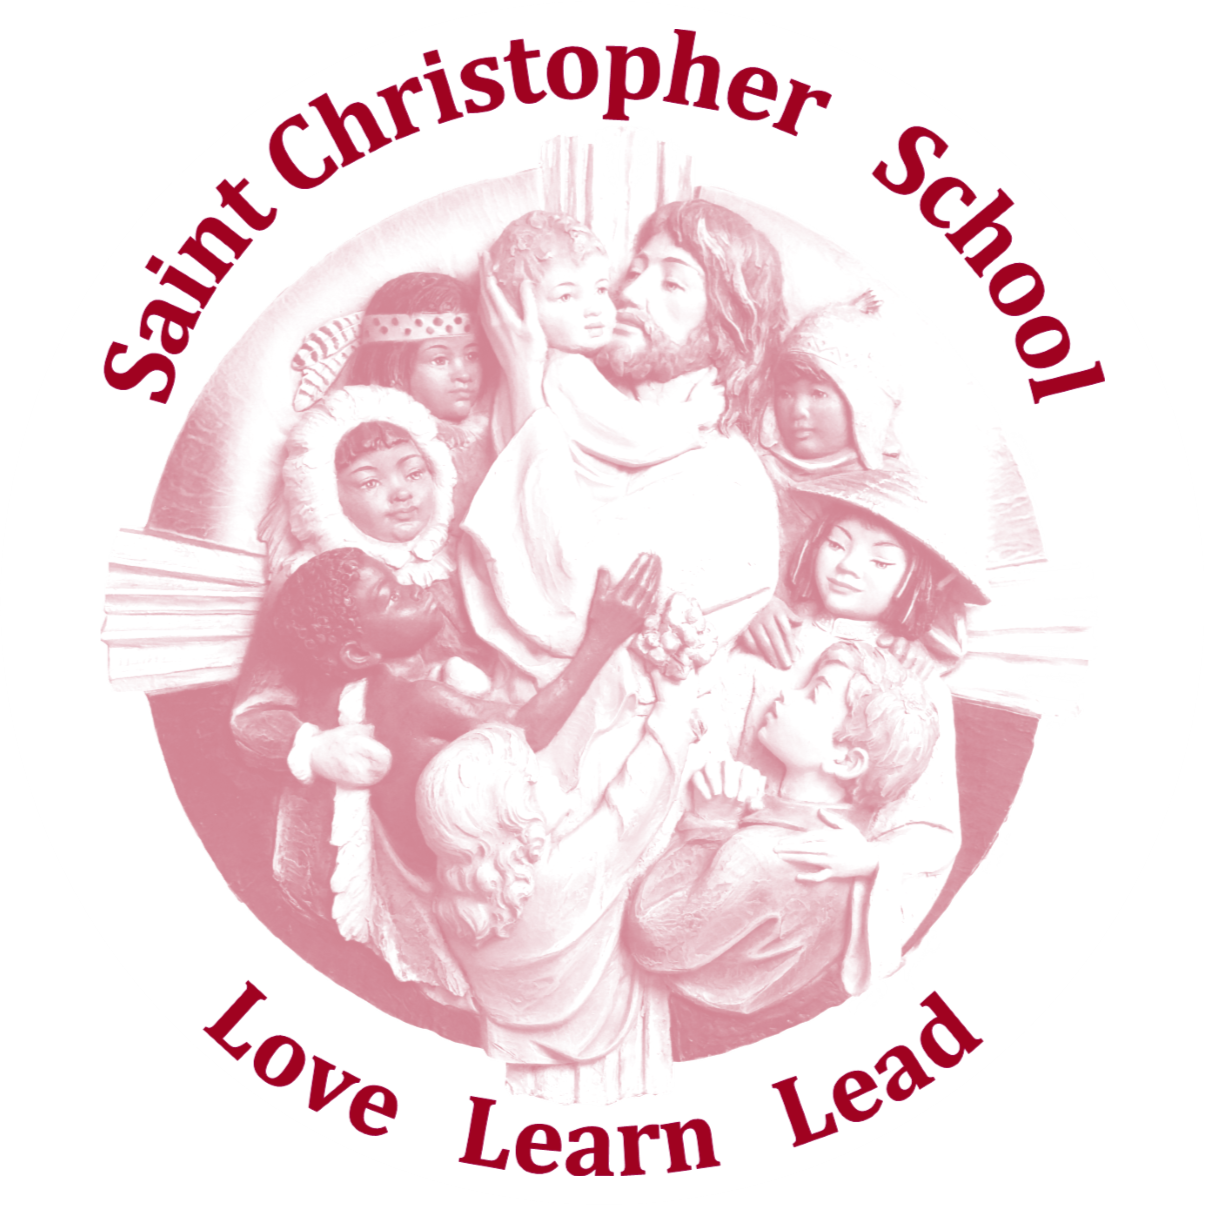 Saint Christopher School